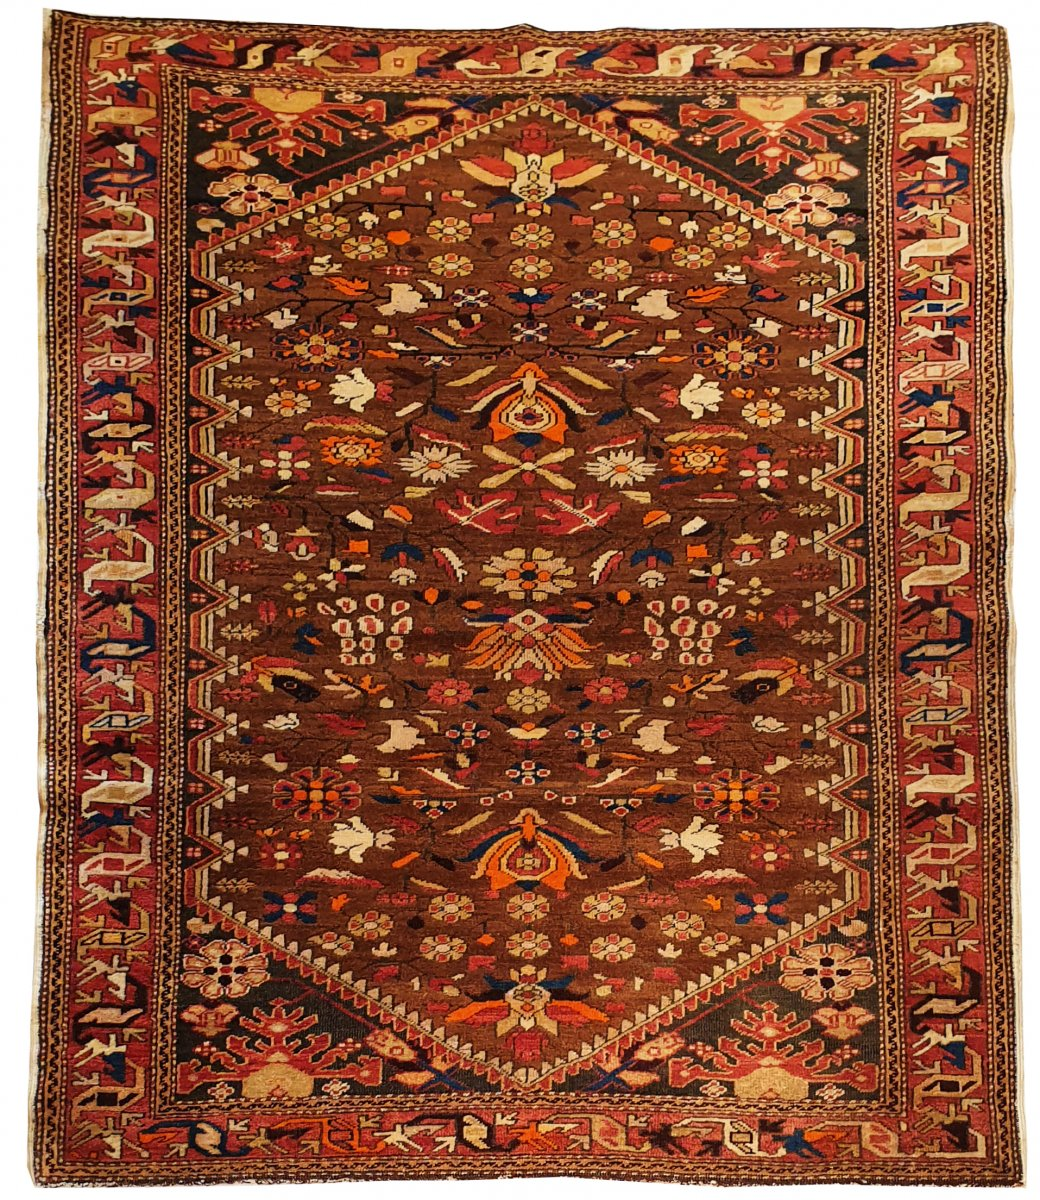 732 - Caucasian Rug From The 20th Century